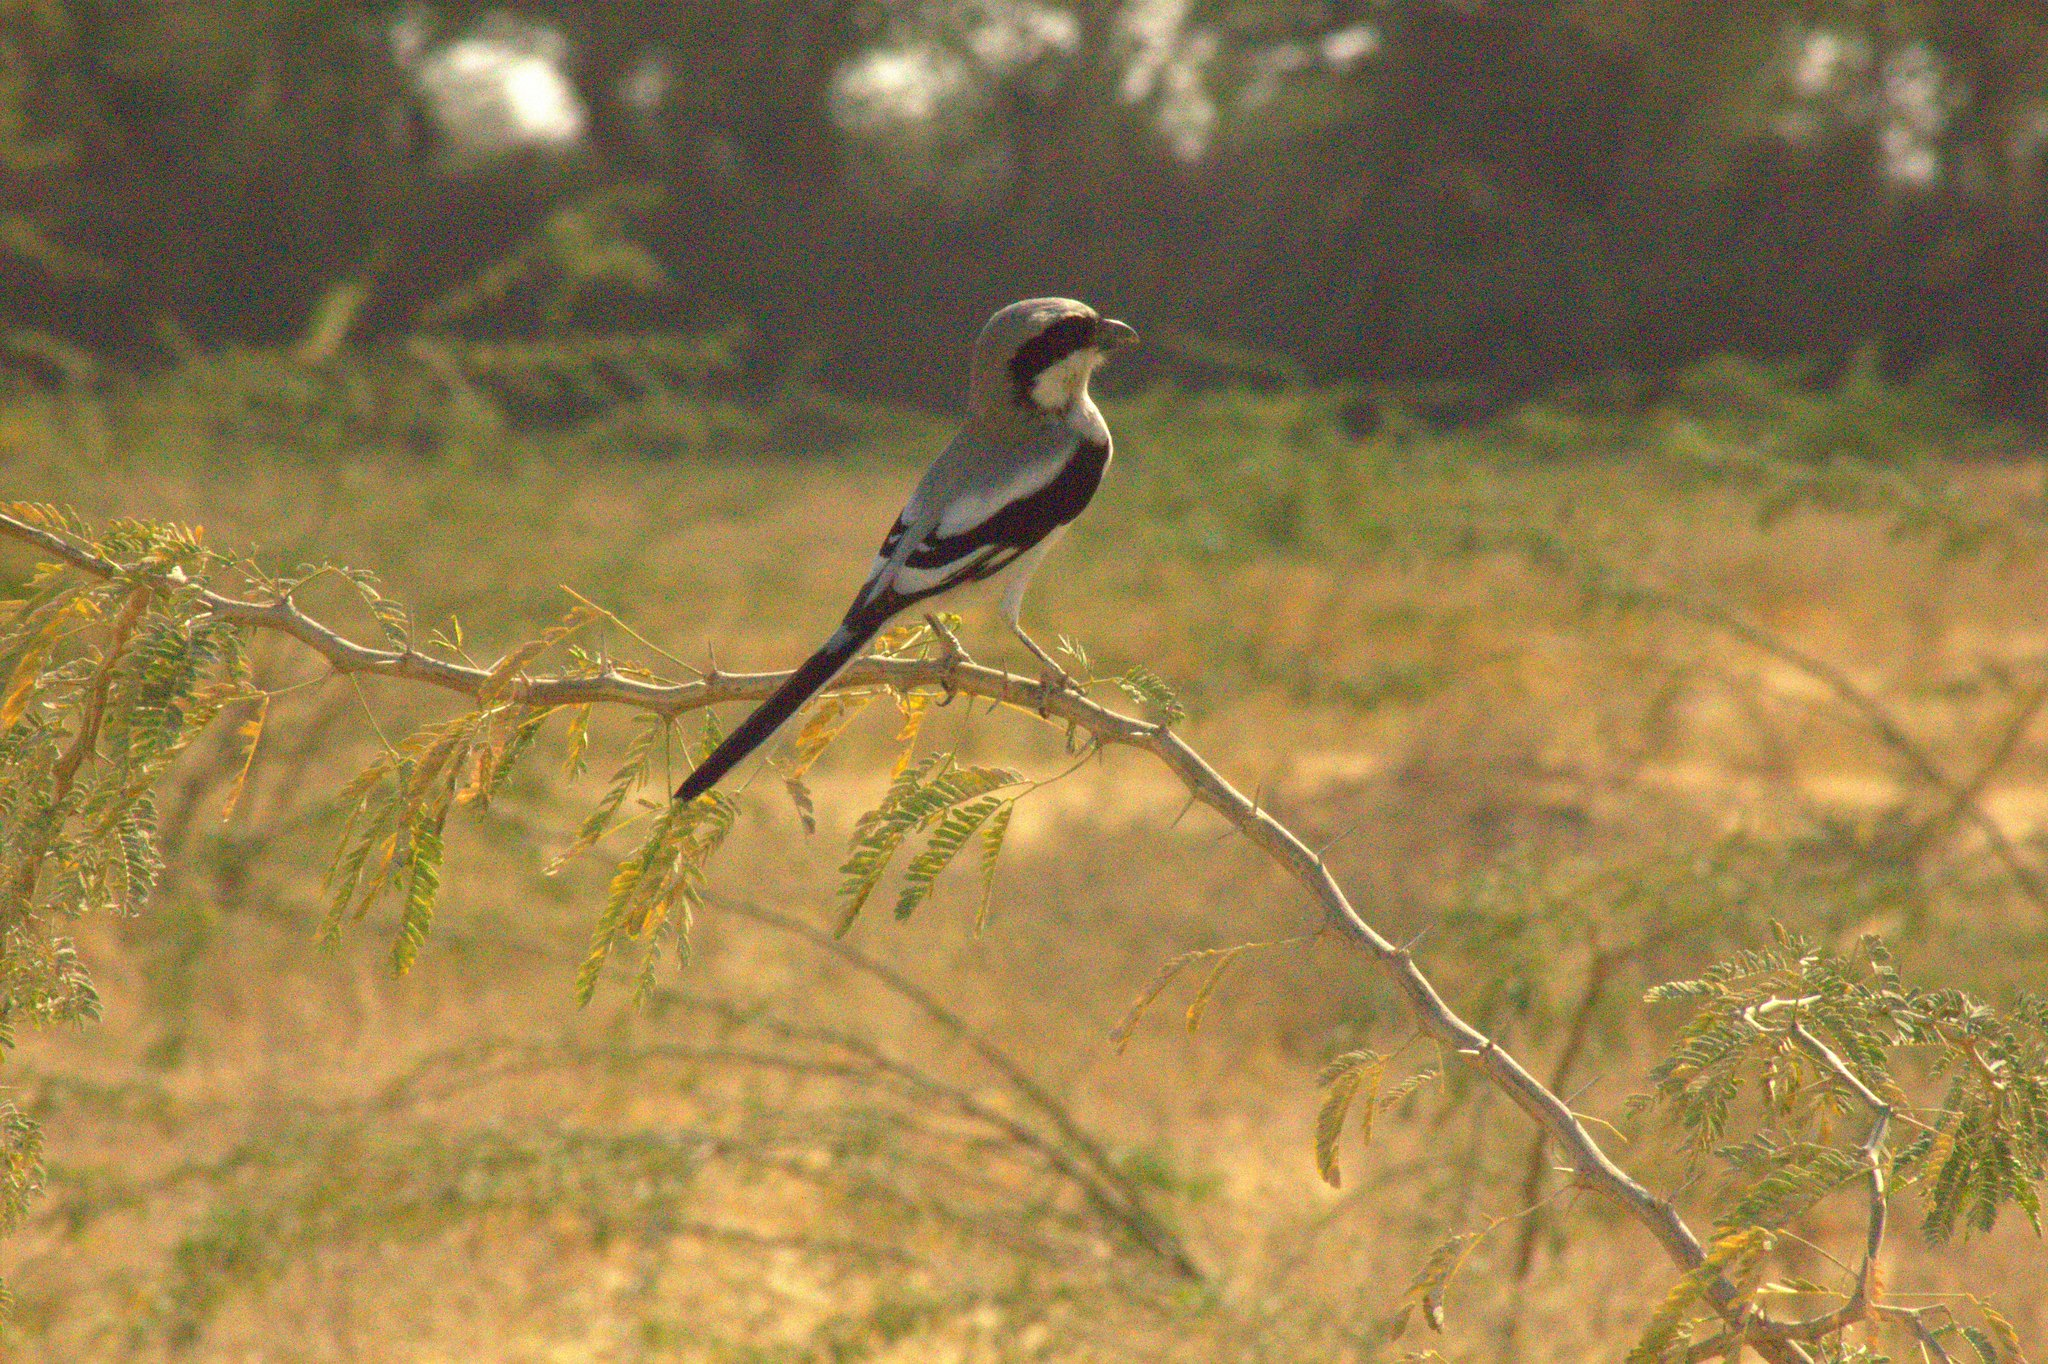 Wildbird spotting can be done at Salawas